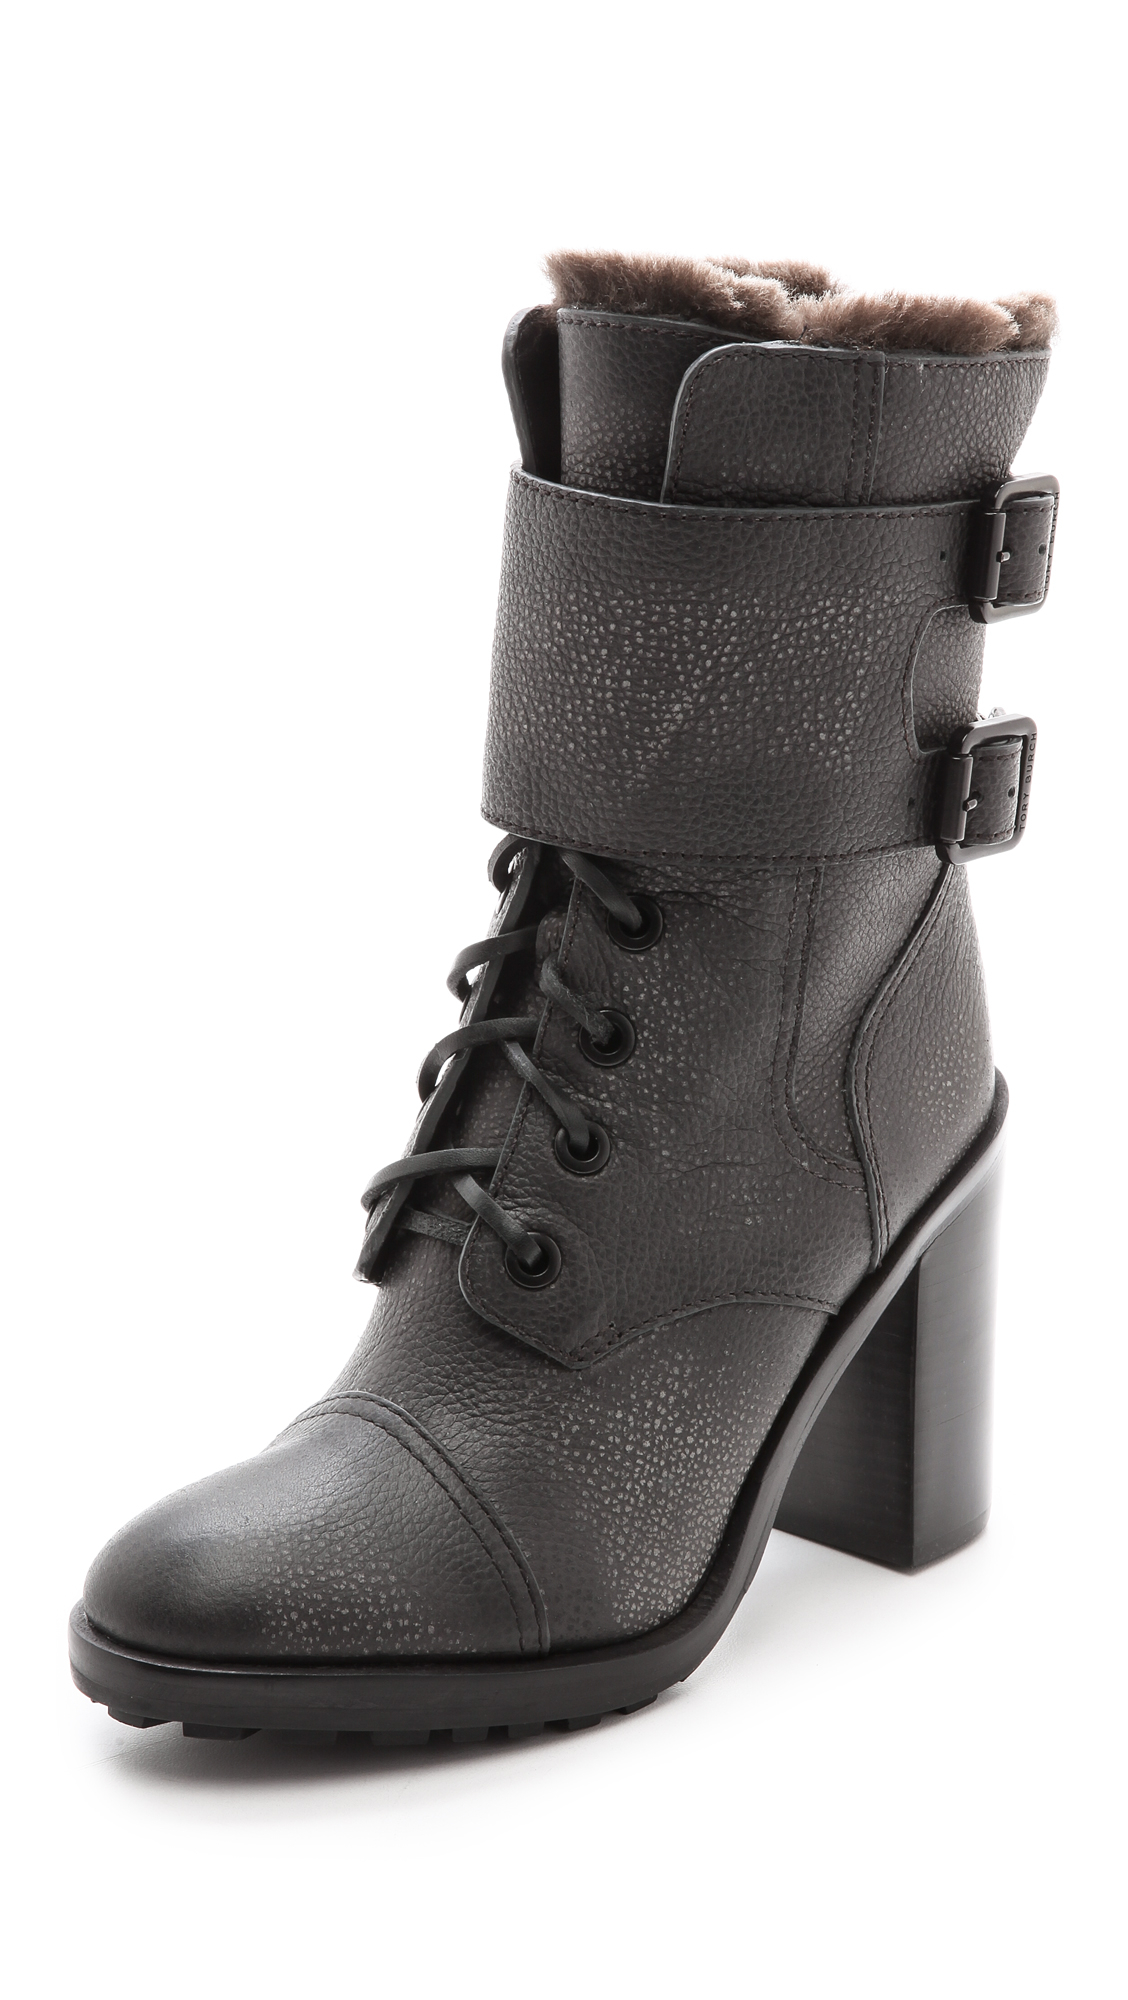 60c92d64b8f47 Lyst - Tory Burch Broome Combat Boots With Shearling Lining - Irish ...